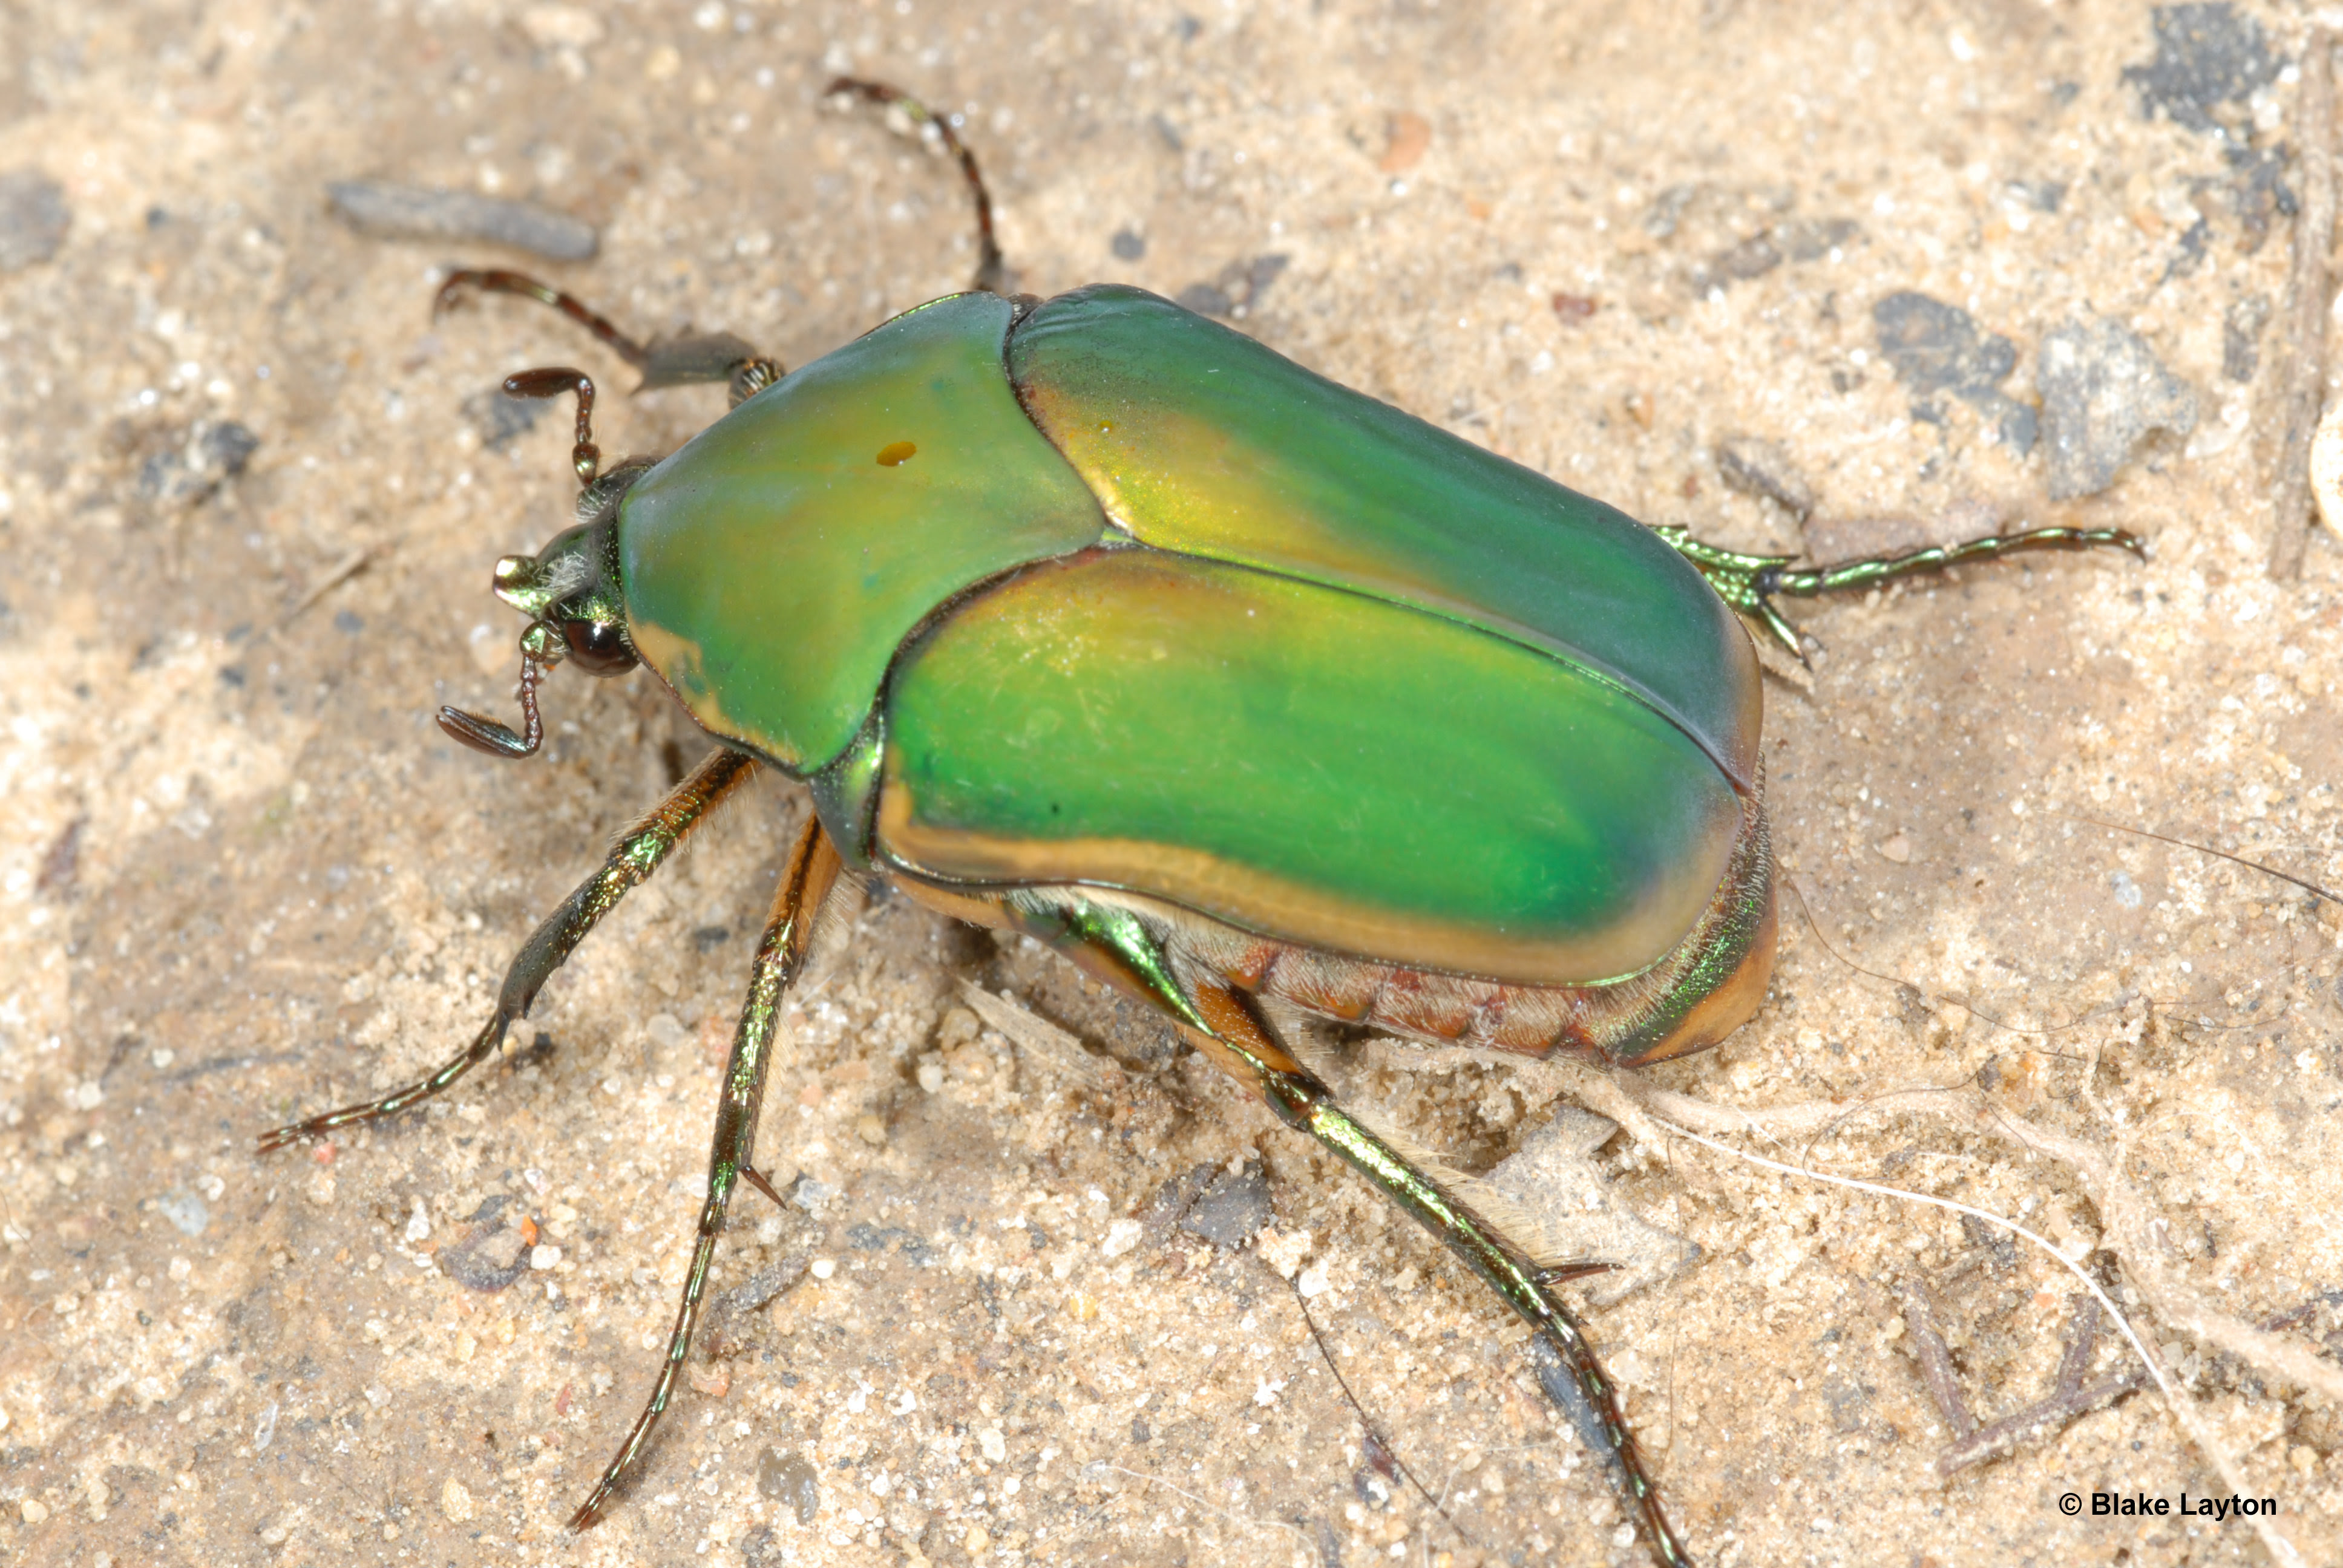 Green iridescent beetle with six legs.